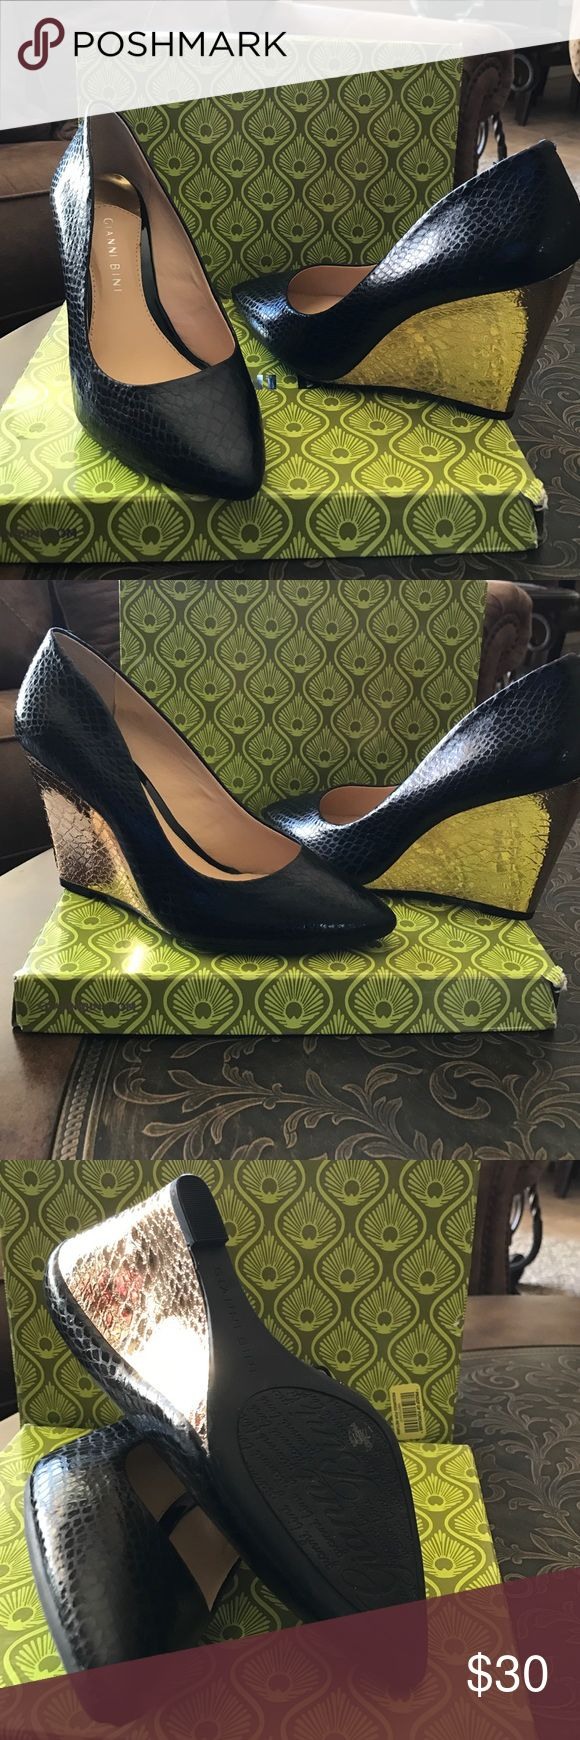 Gianni Bini beautiful shoes Brand-new black shoes with 3 1/2 gold wedge shoes, never use, excellent condition comes in the original box Gianni Bini Shoes Wedges